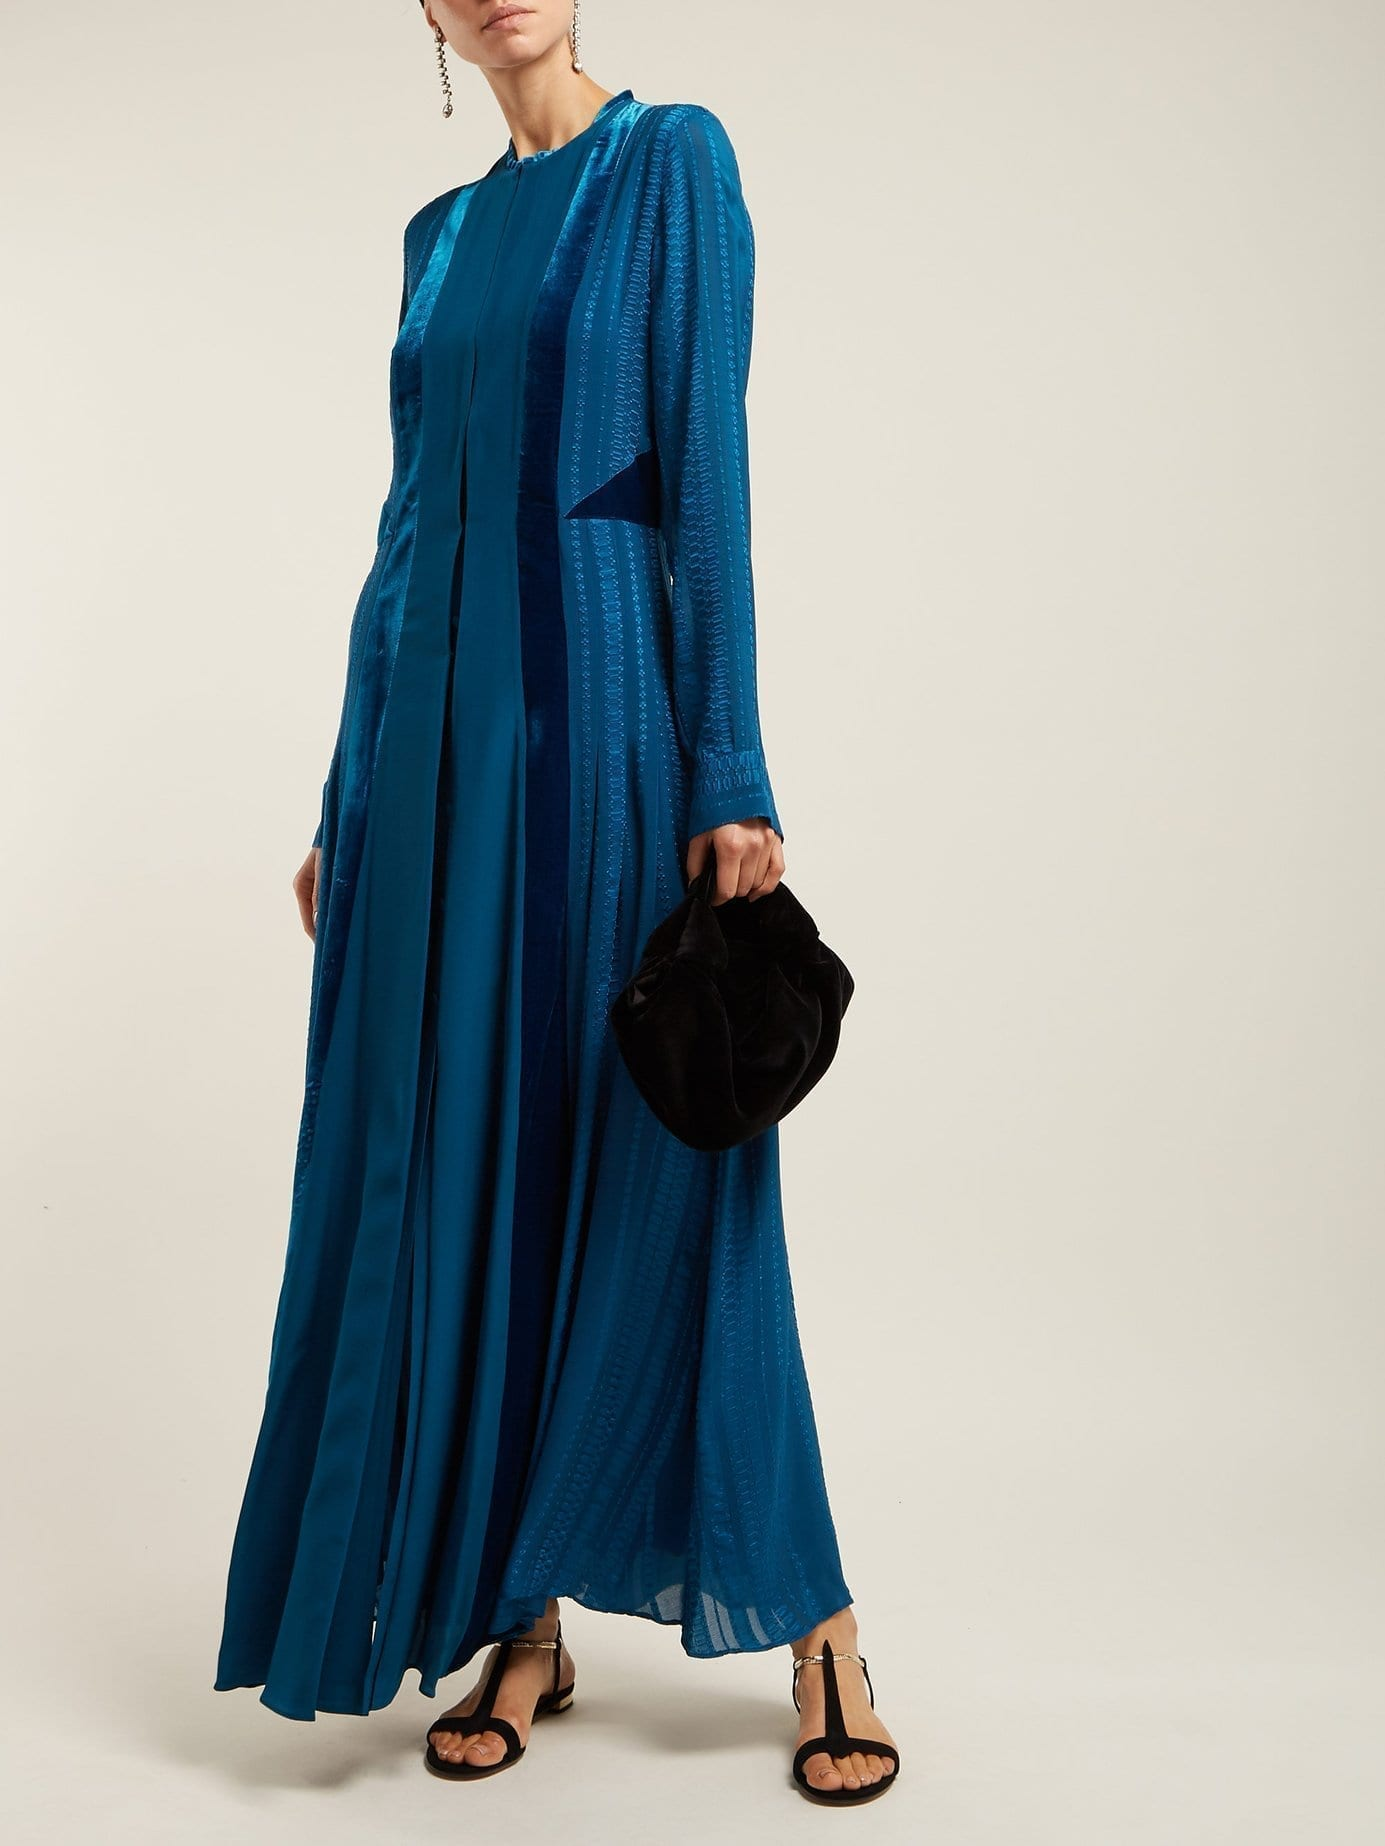 ZEUS + DIONE Justina Velvet Panel Silk Teal Blue Dress